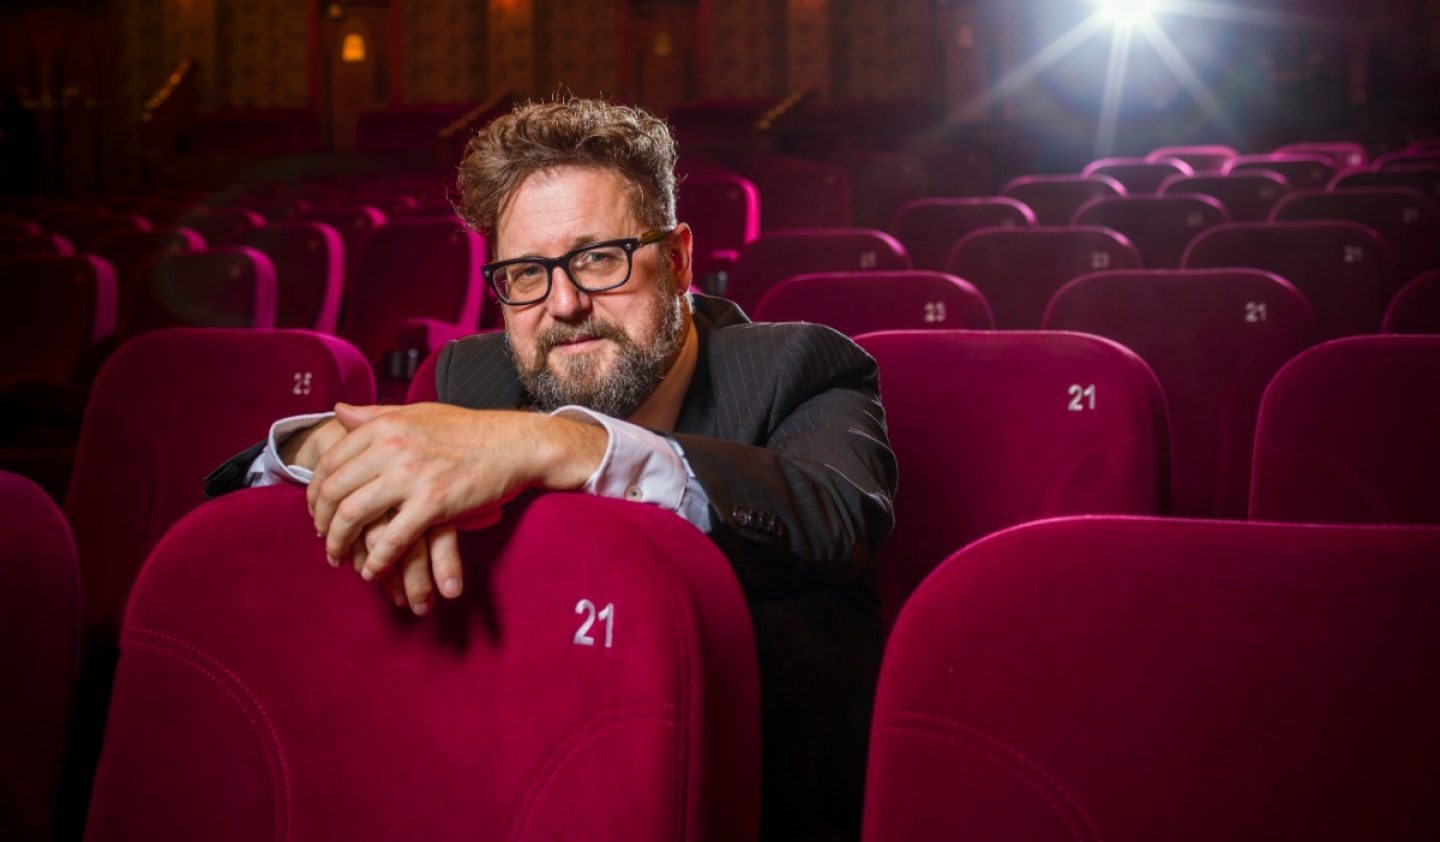 Building Happiness in Cinema met Martin Koolhoven